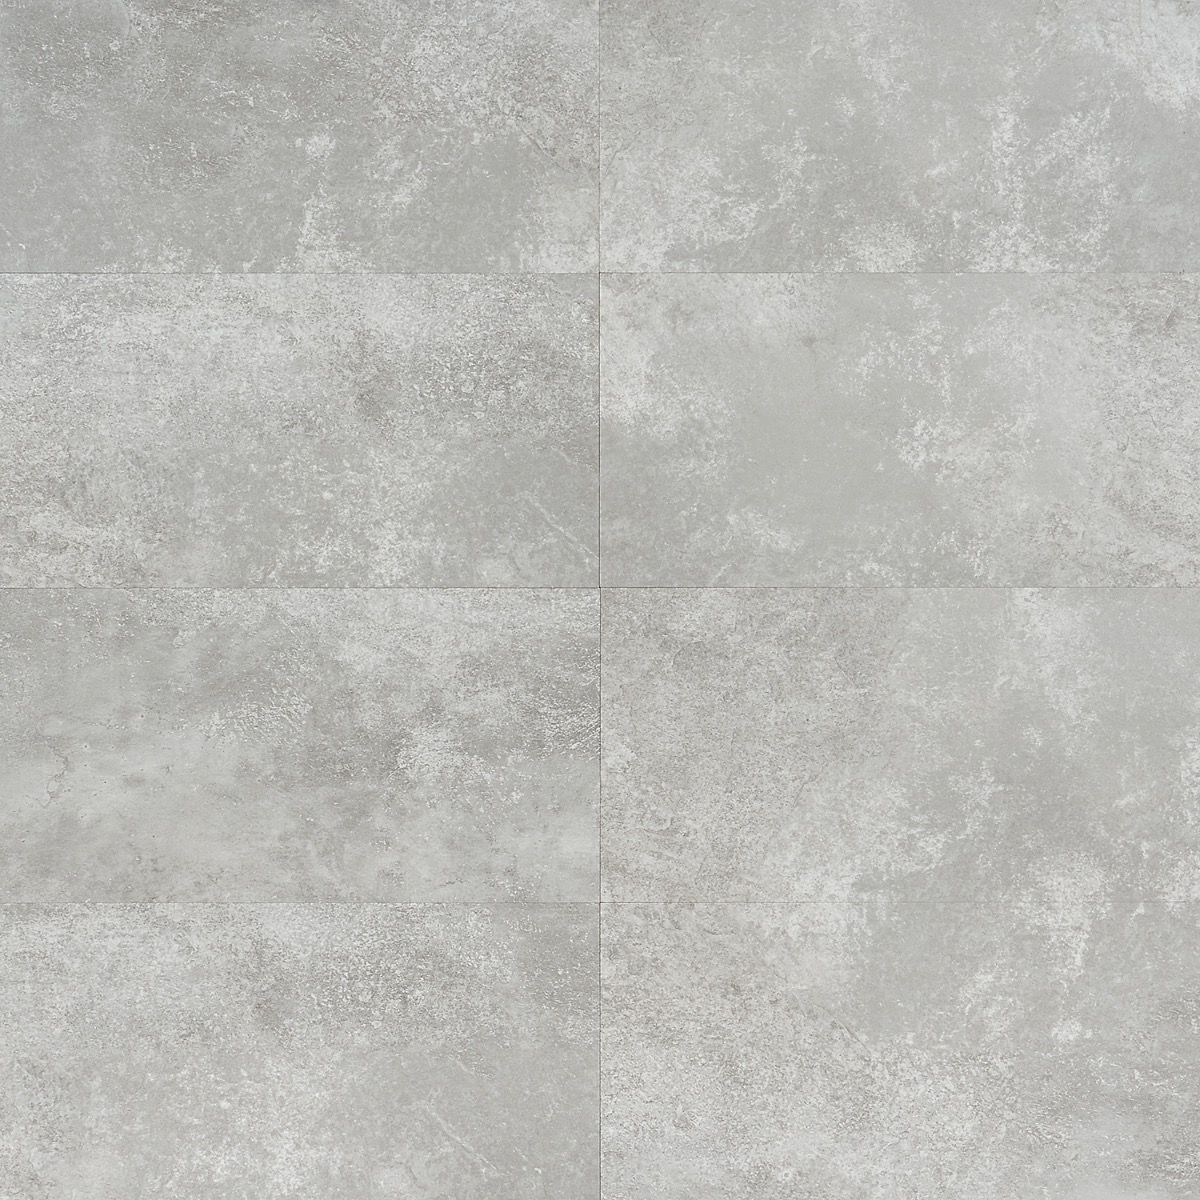 ReNew Metalcrete Platinum 6mil Wear Layer Glue Down 12x24 Luxury Vinyl Tile